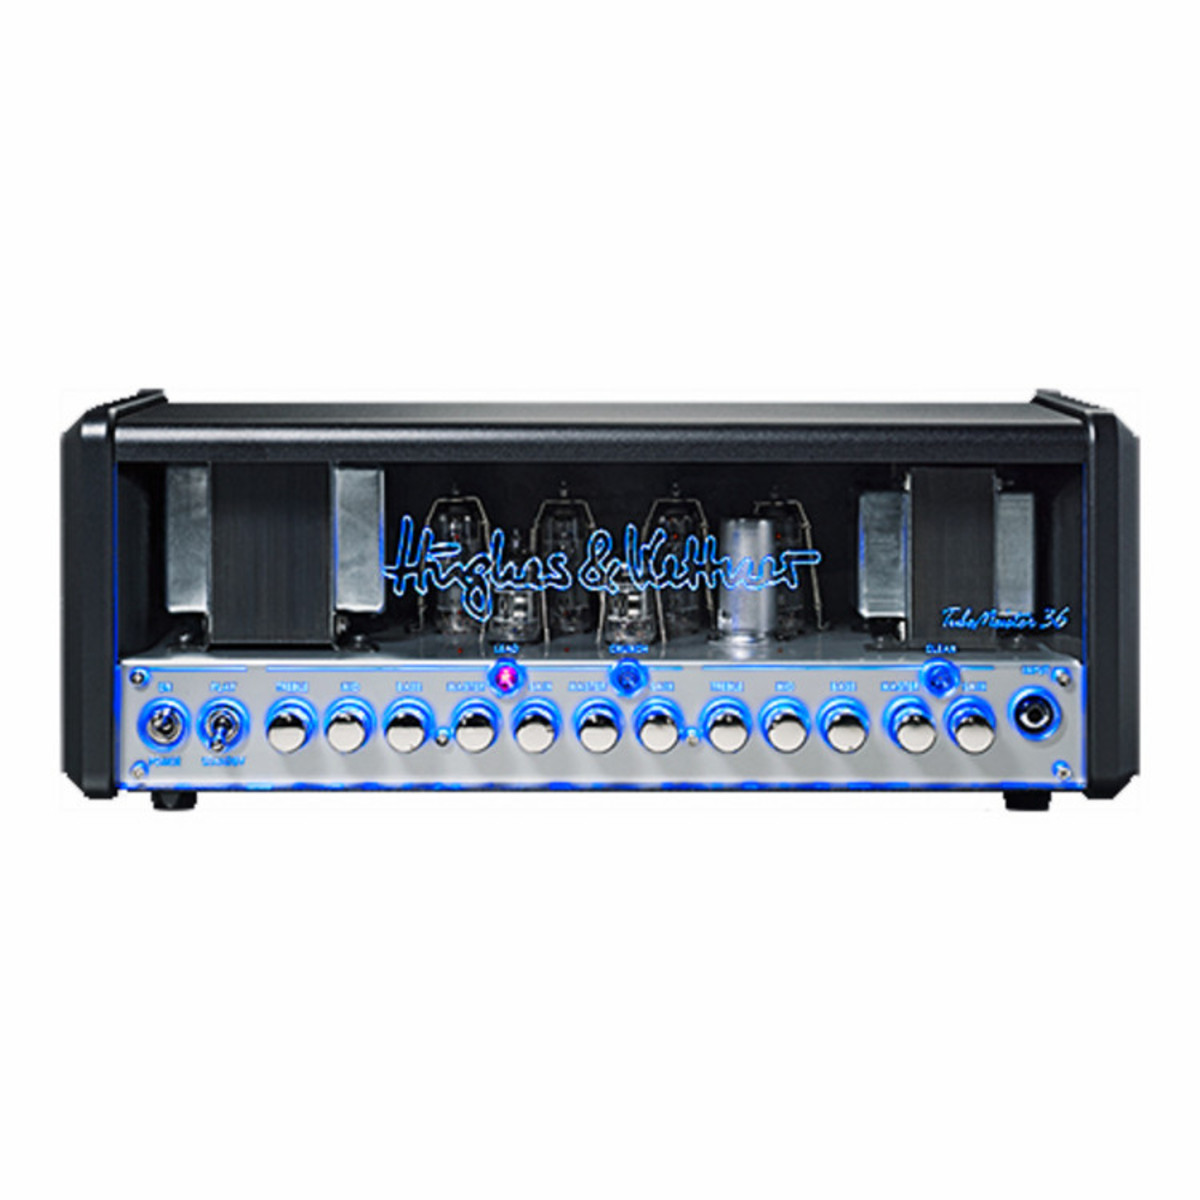 hughes kettner tubemeister 36 guitar amp head at gear4music. Black Bedroom Furniture Sets. Home Design Ideas